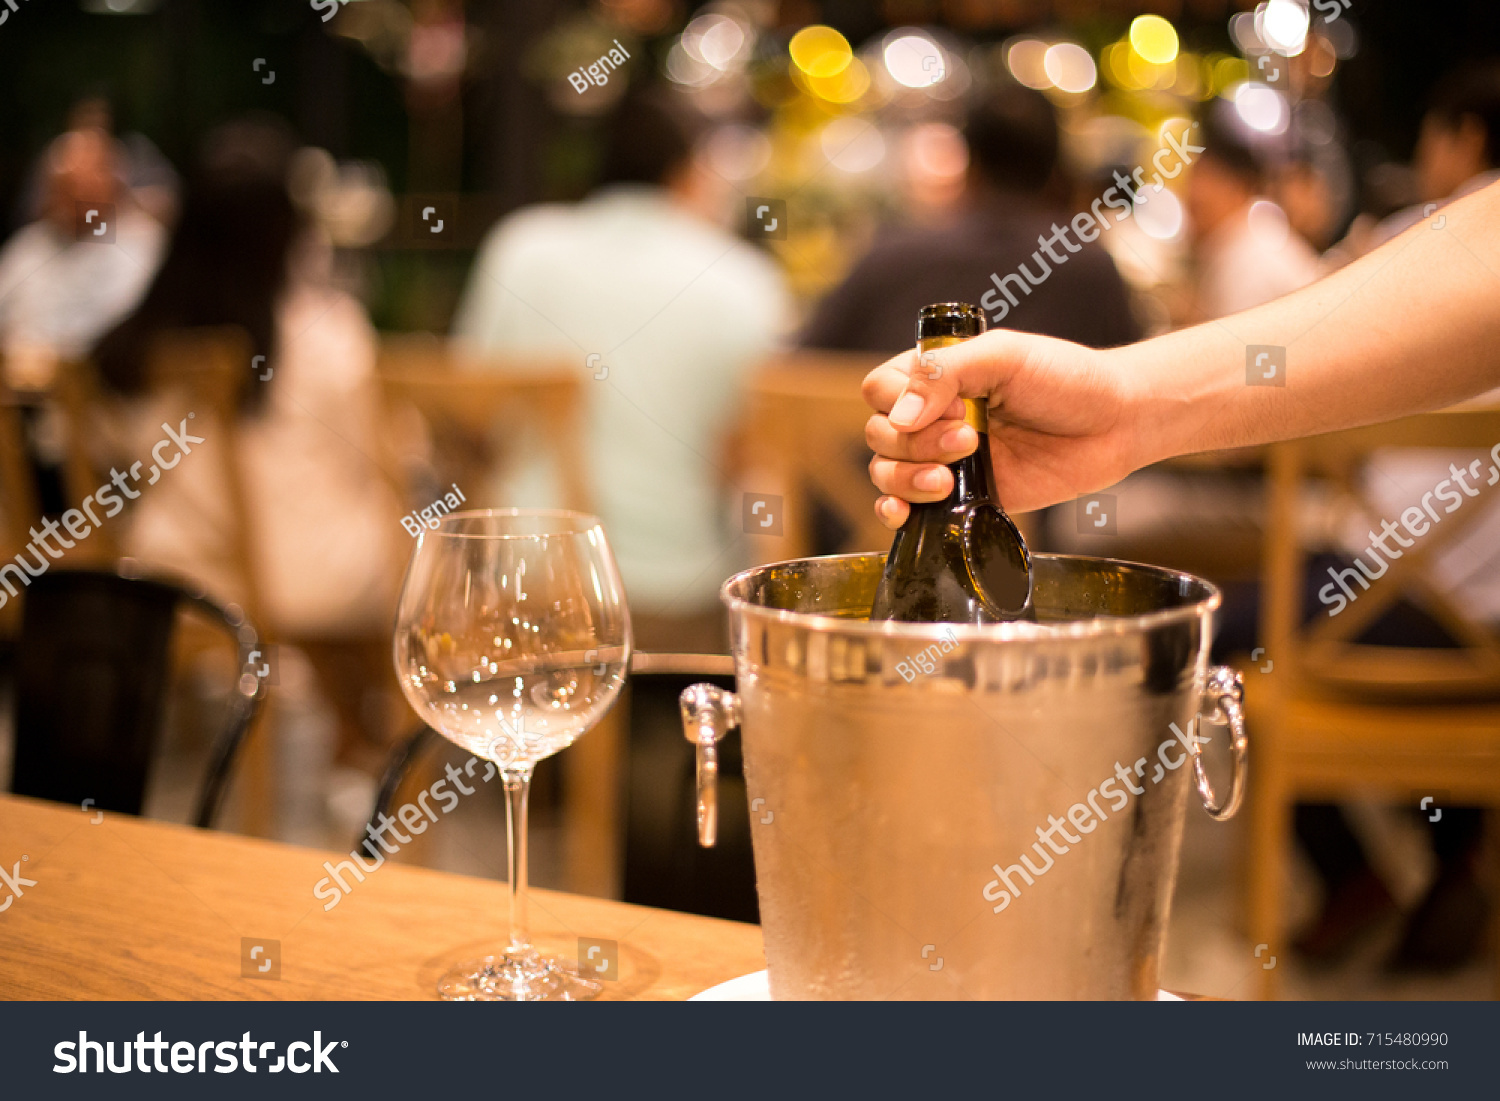 Shot in high iso with low light man hand grabbing bottle of wine in ice bucket & Shot High Iso Low Light Man Stock Photo 715480990 - Shutterstock azcodes.com